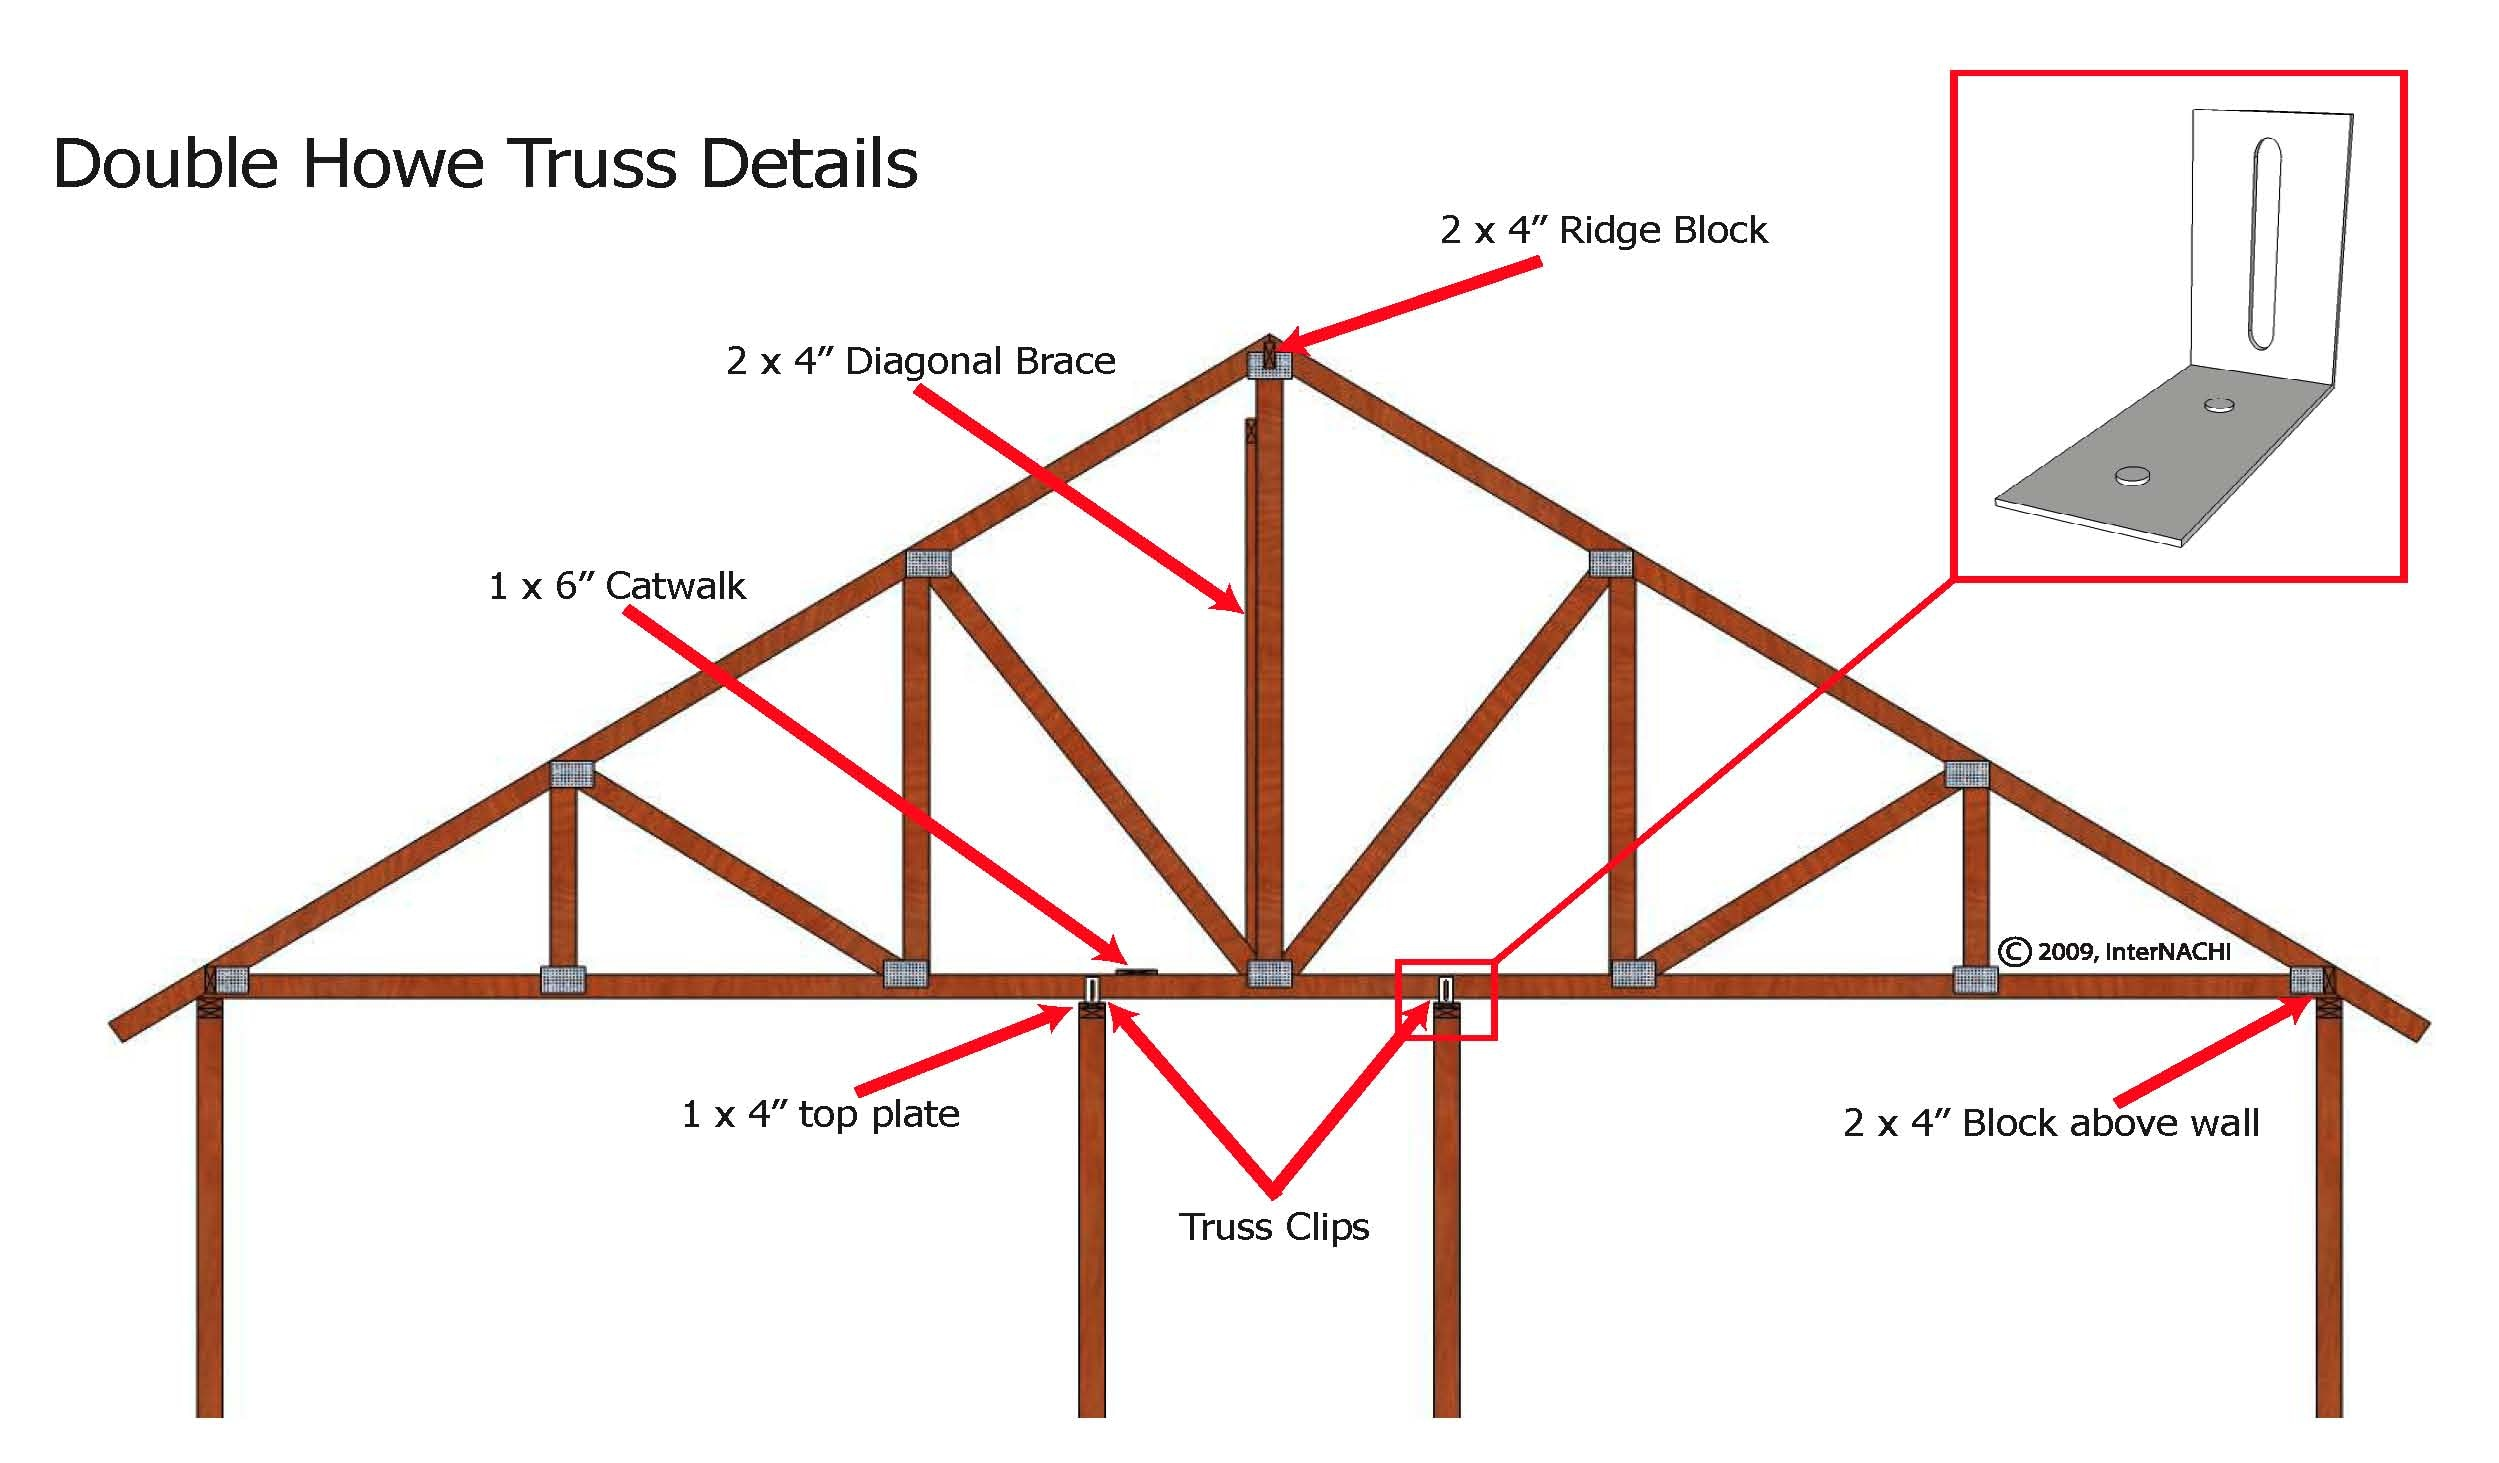 Double Howe Truss Inspection Gallery Internachi 174